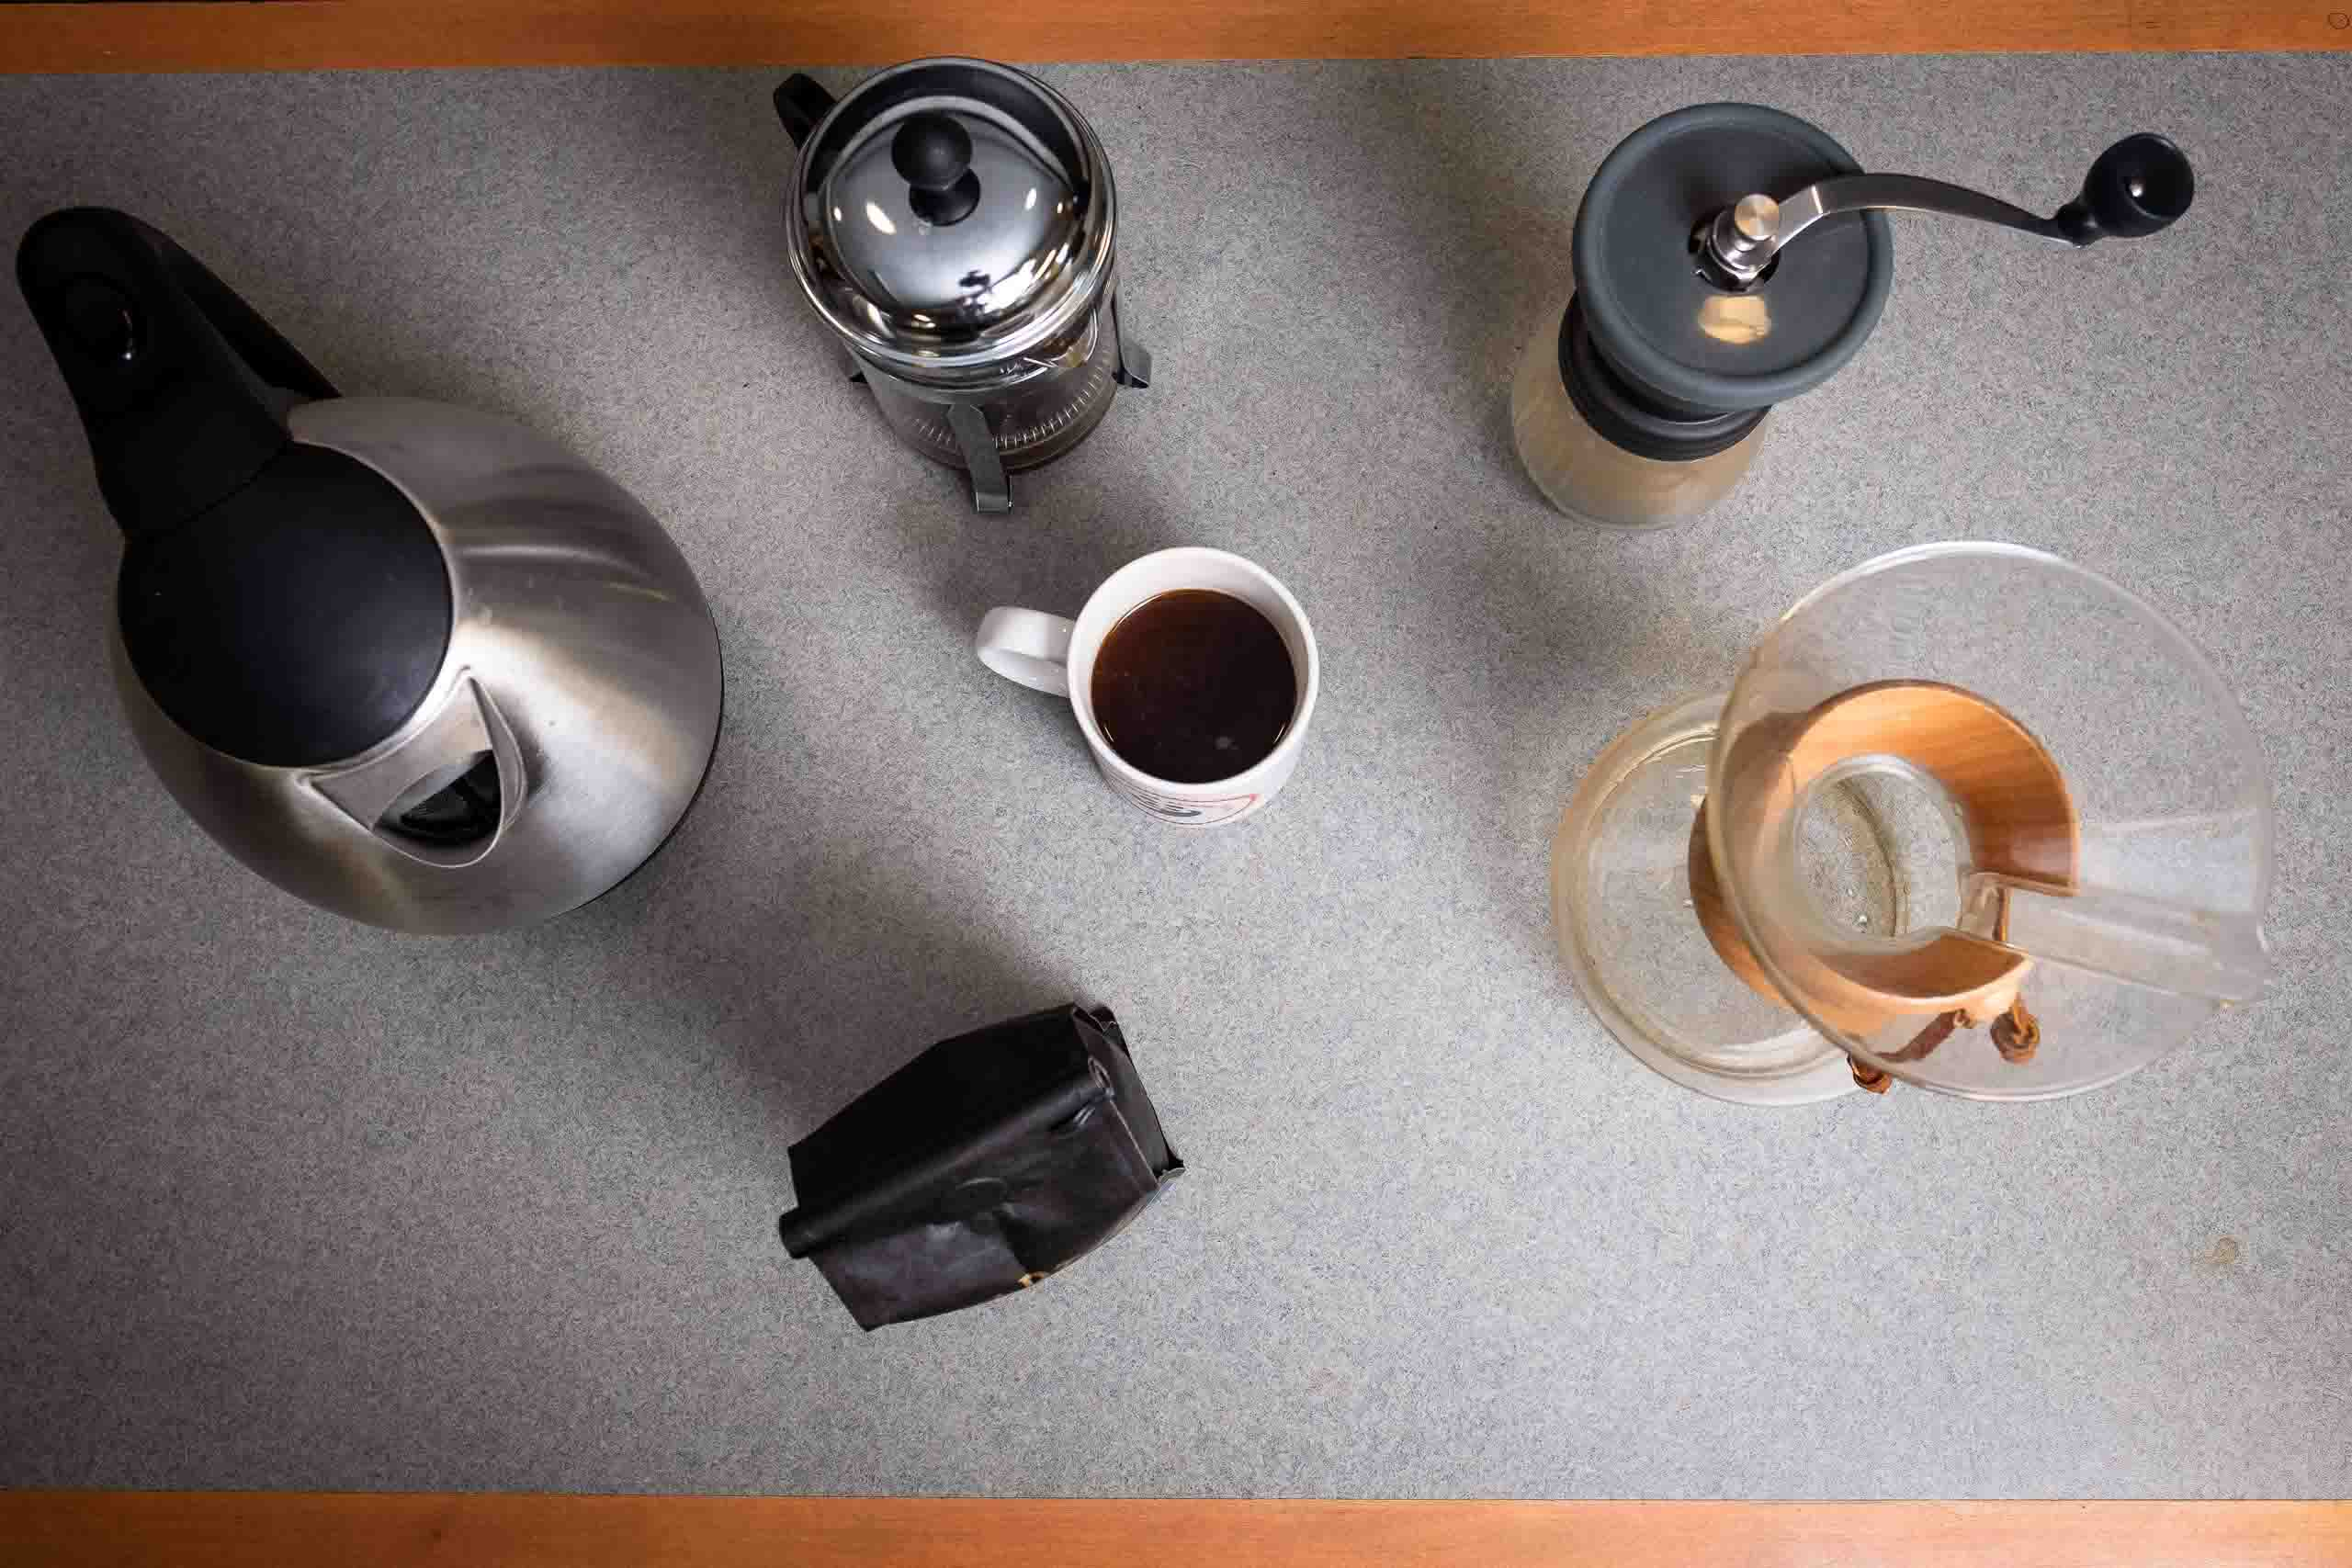 Various coffee-related items on a table